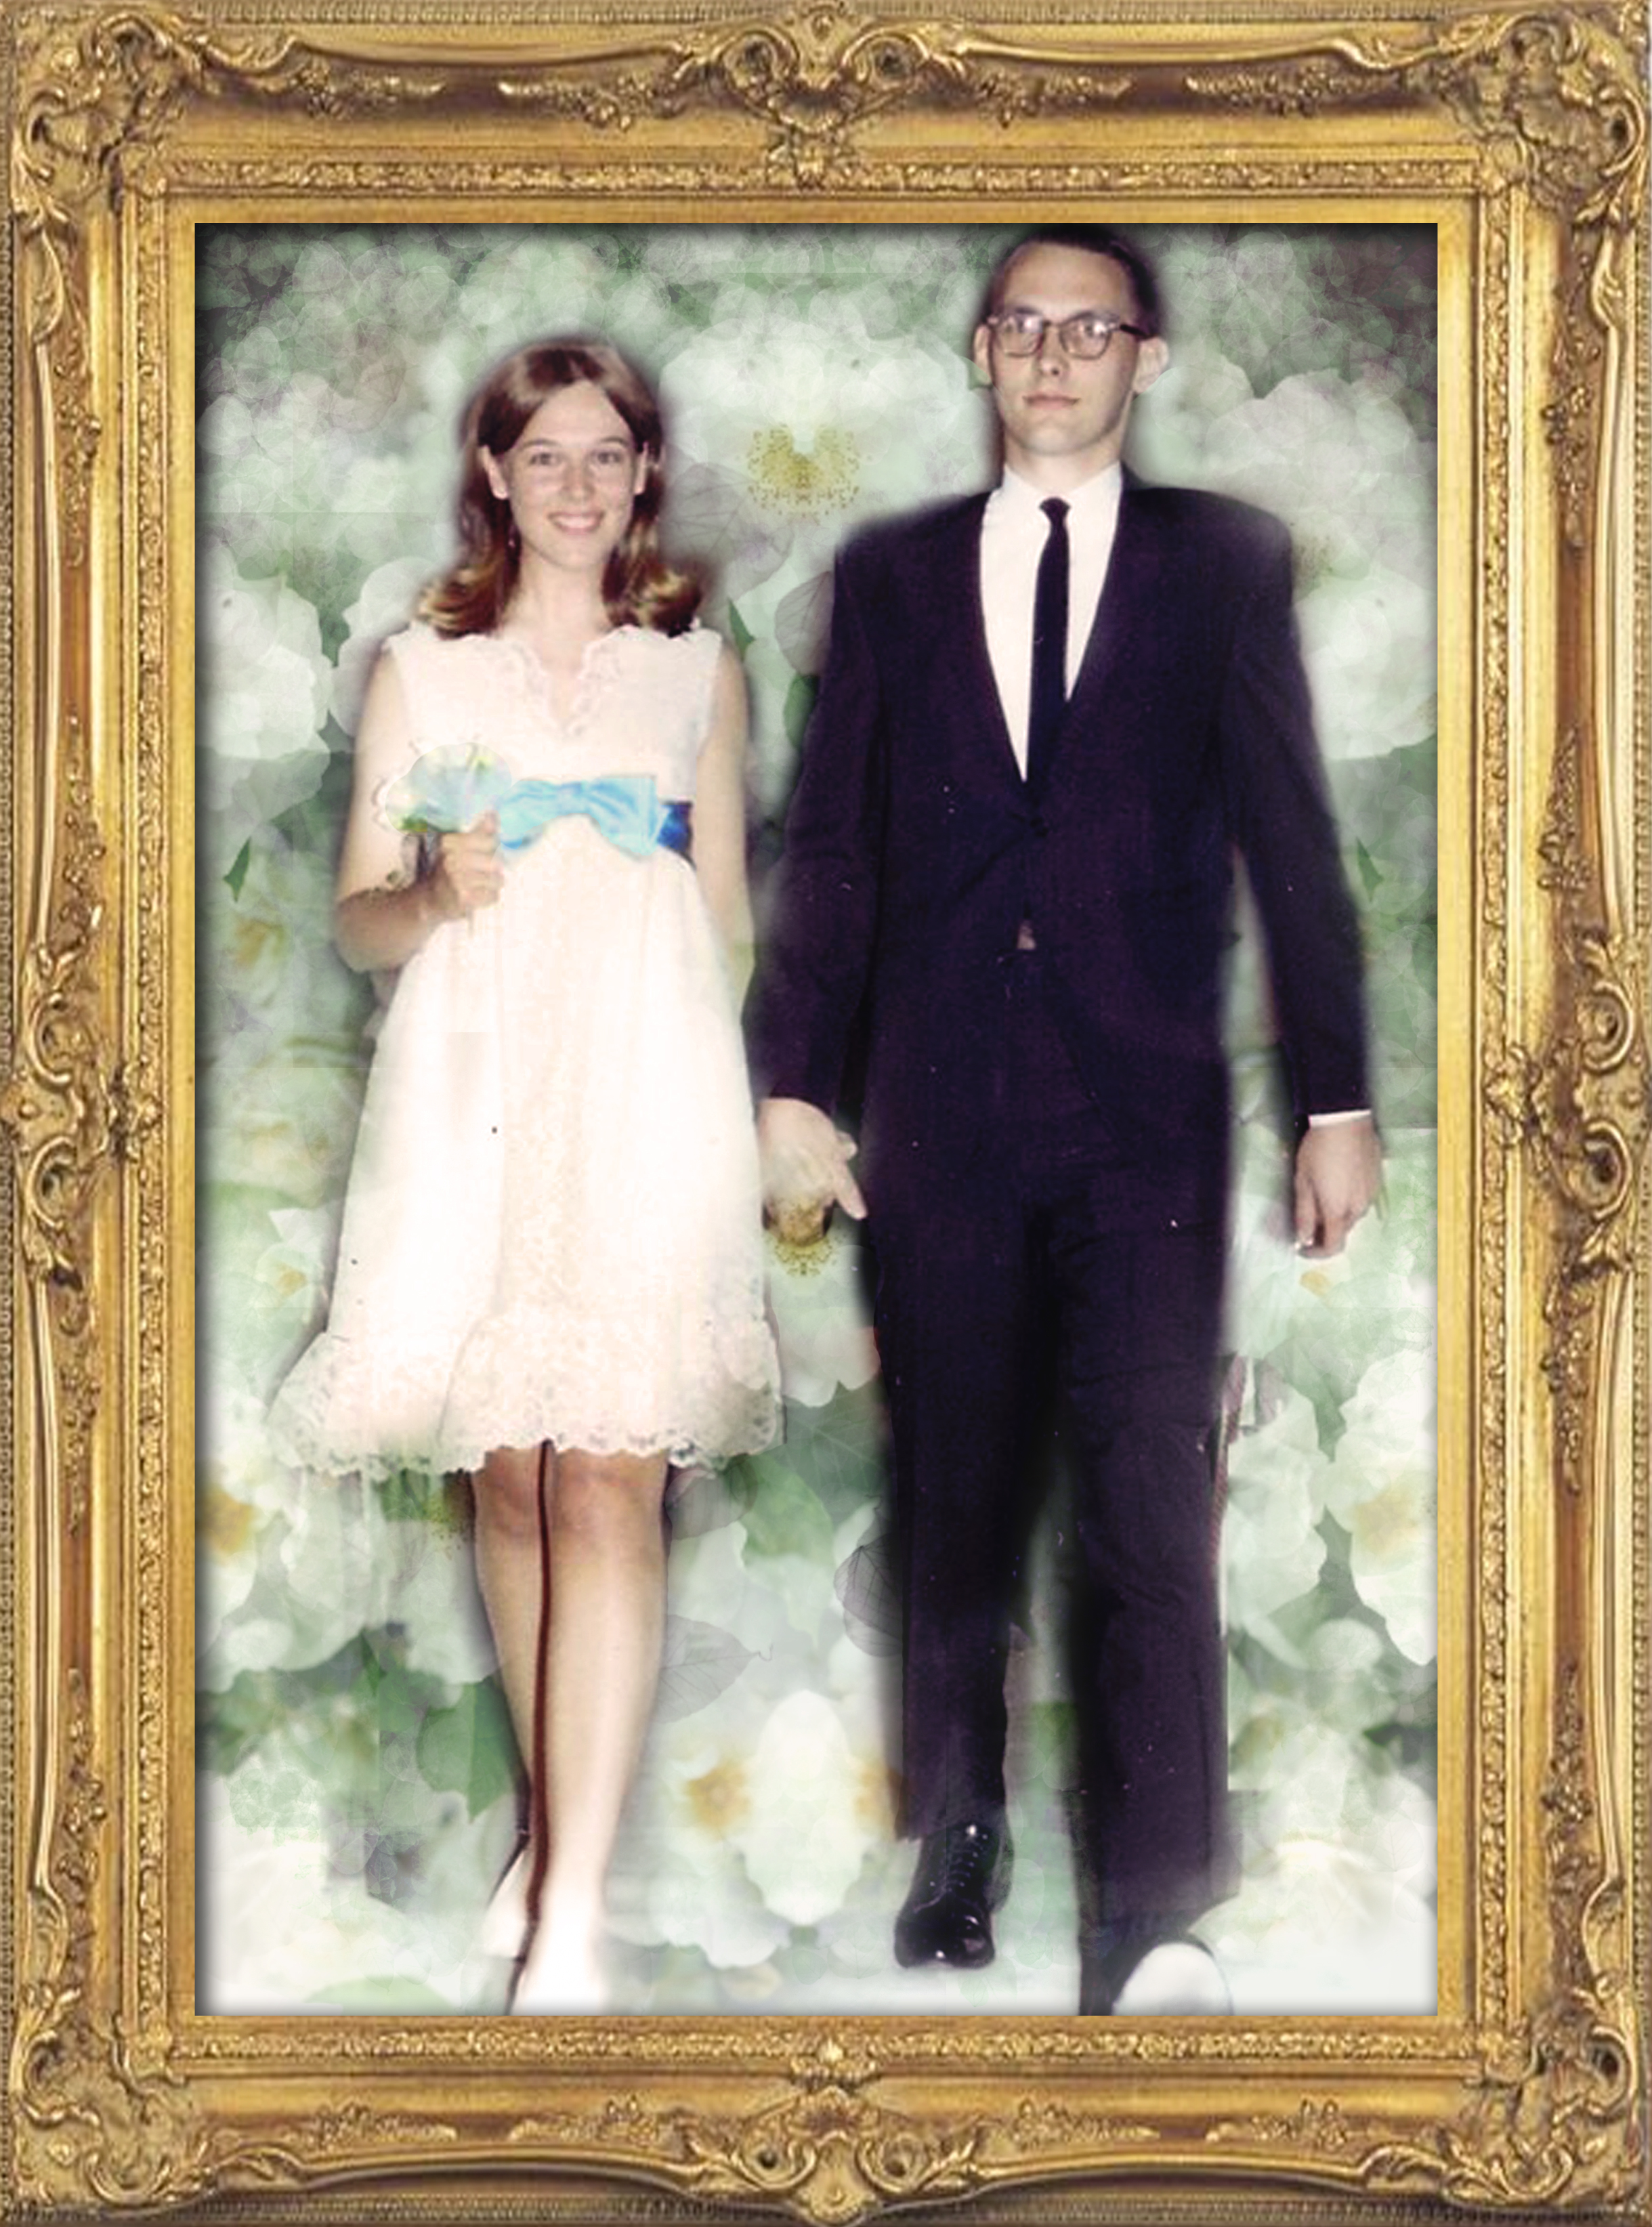 My Parents' Wedding Photo